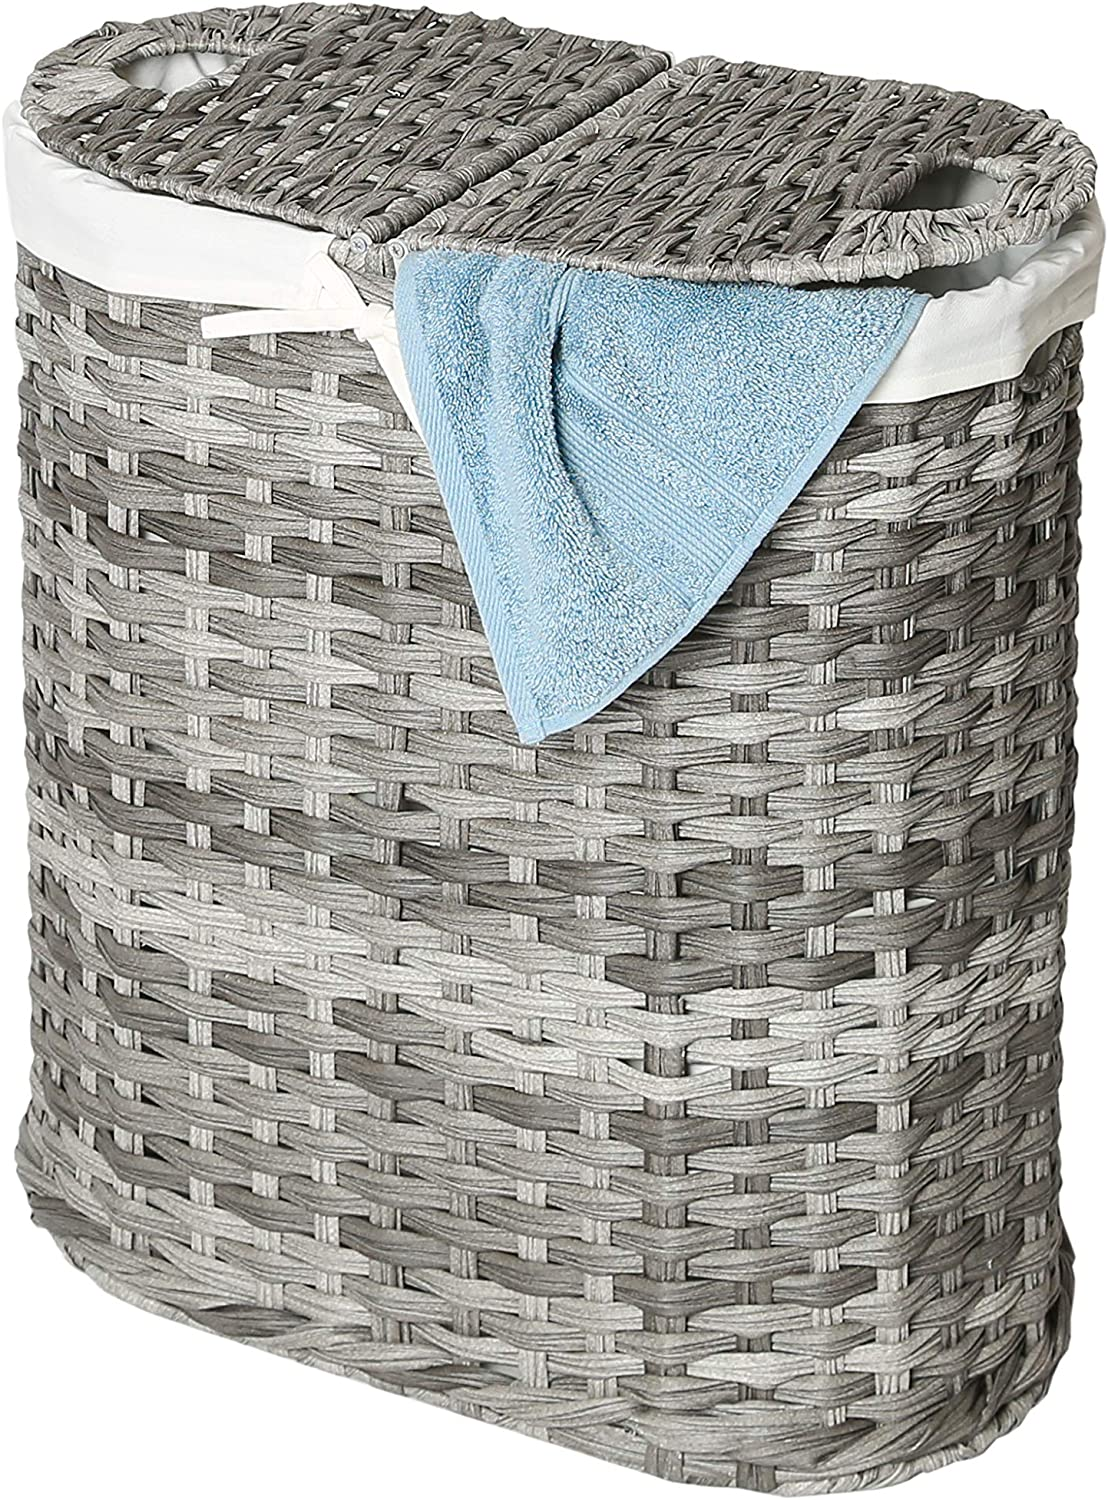 Seville Classics Handwoven Oval Double Lidded Removable Canvas Liner Laundry Sorter Hamper Bin, Gray